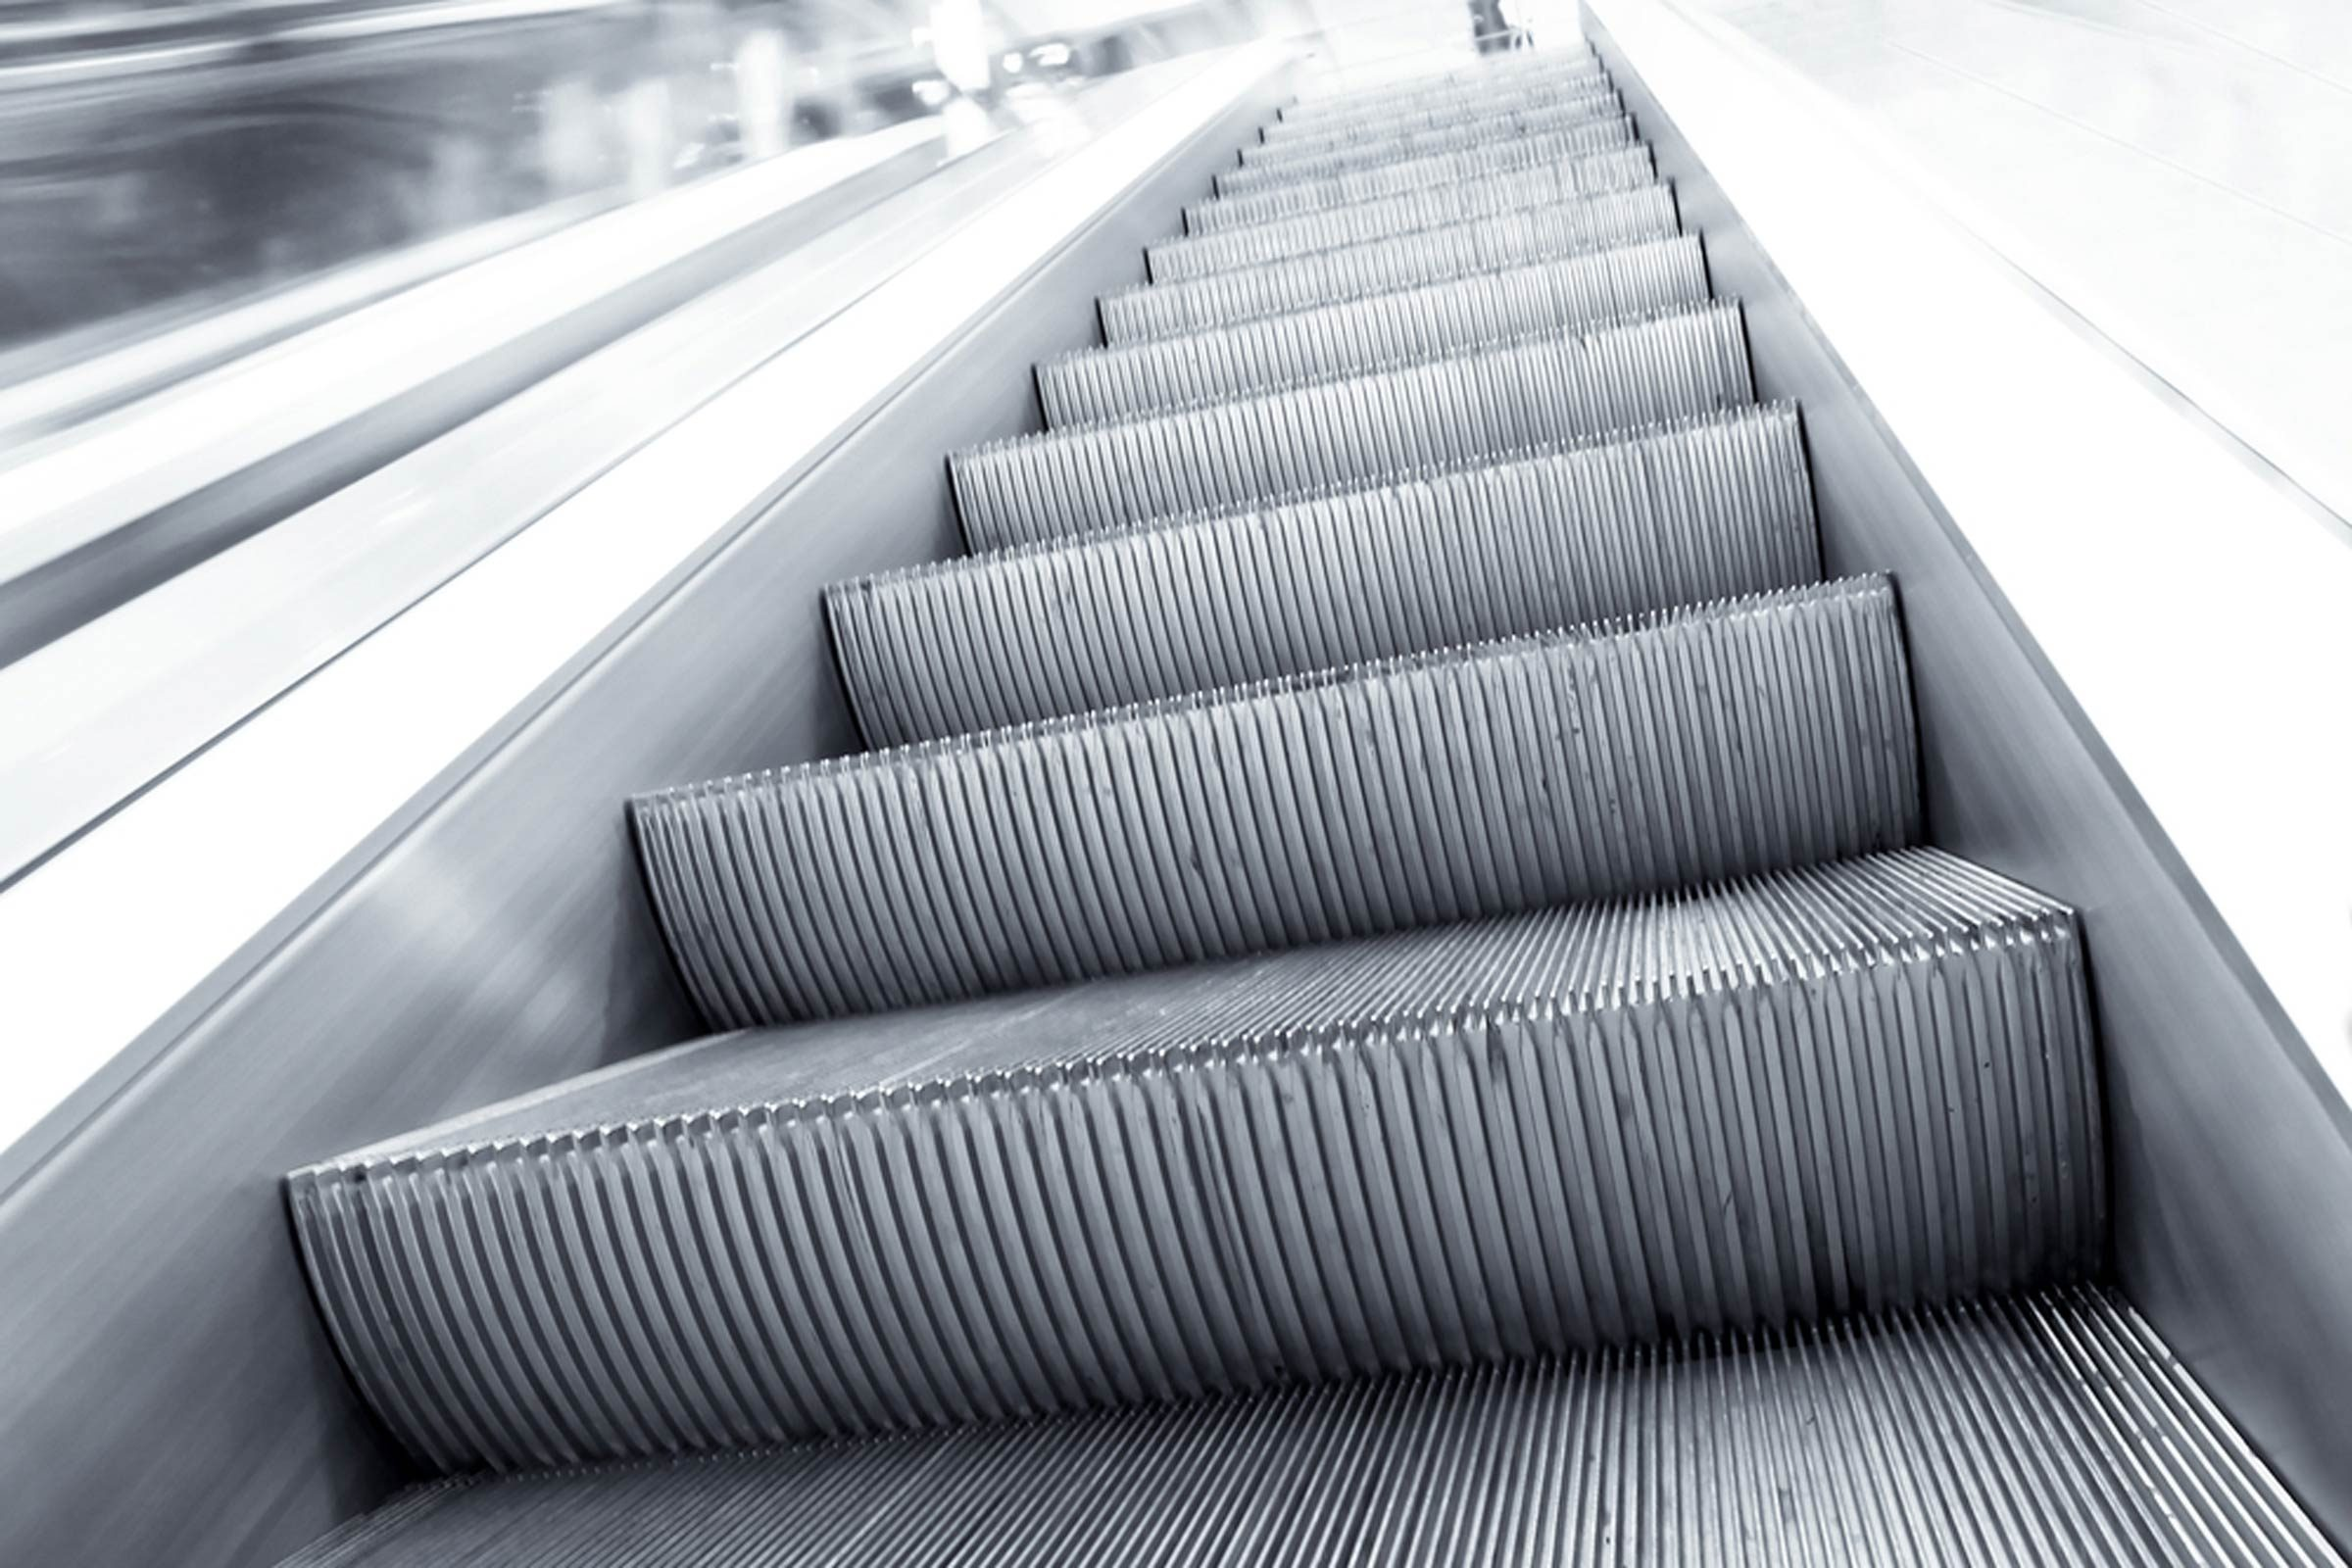 The-Real-Reason-Why-Escalator-Stairs-Have-Grooves_86605651_Vladitto